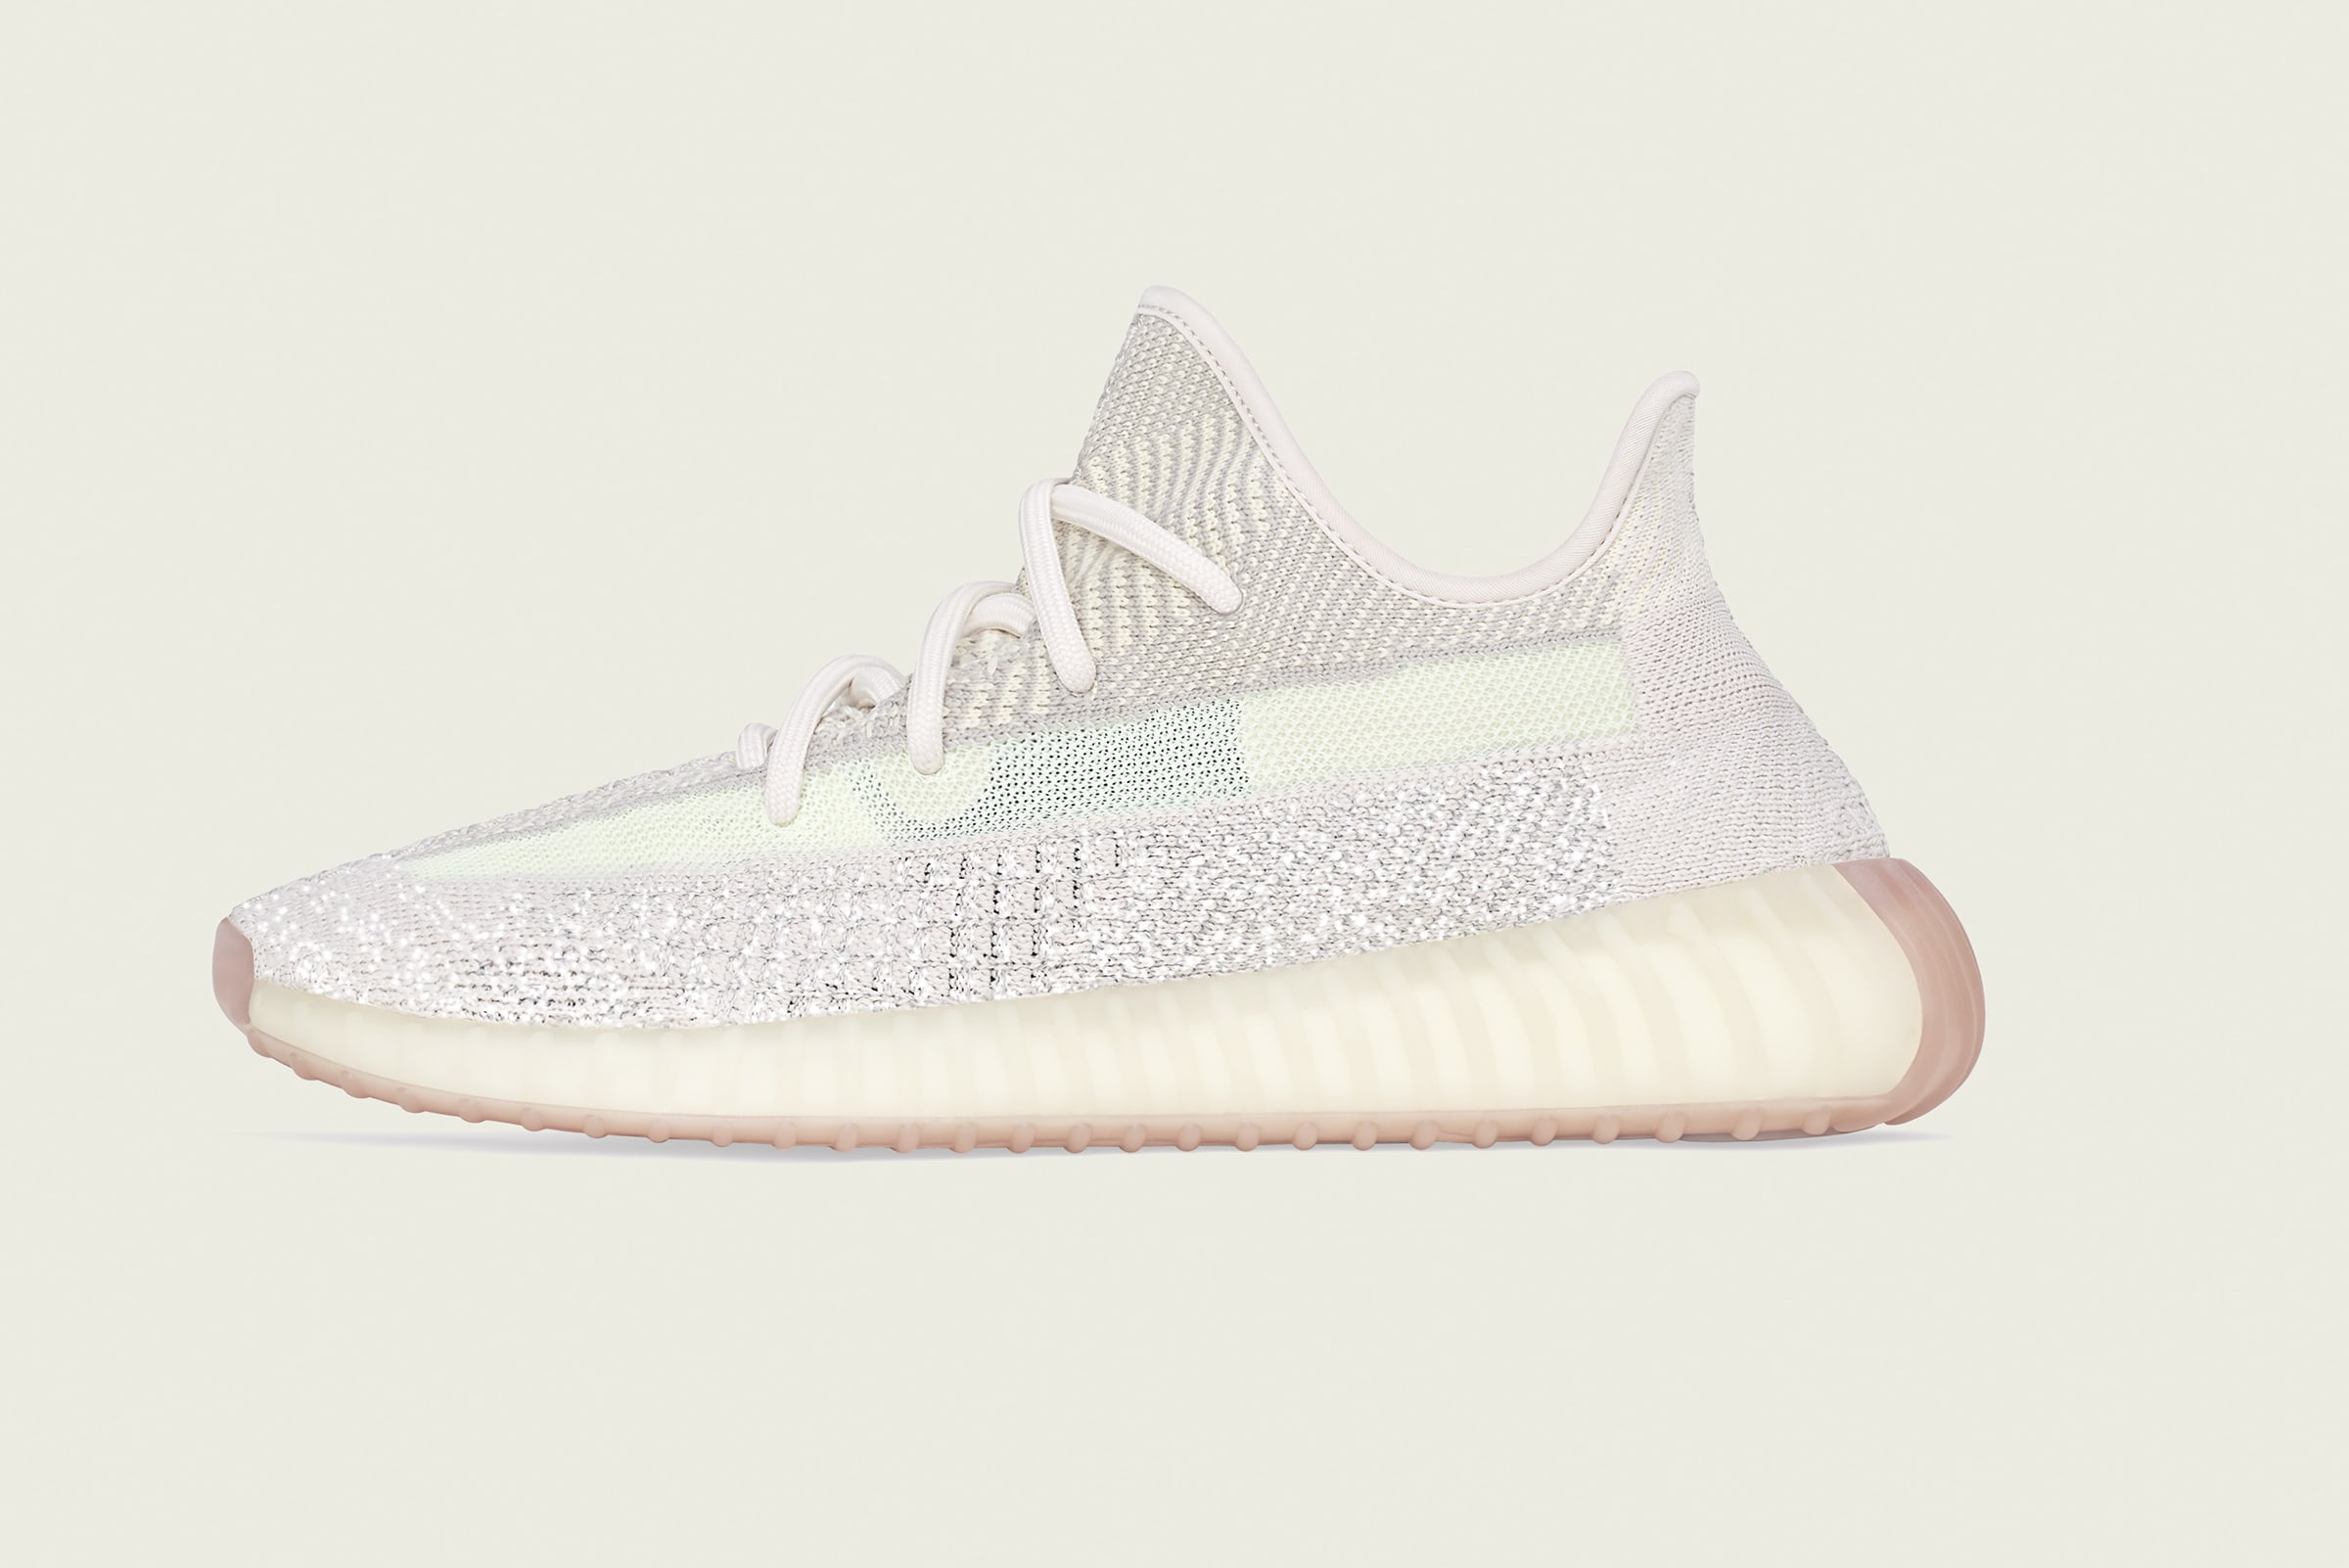 yeezy zebra links